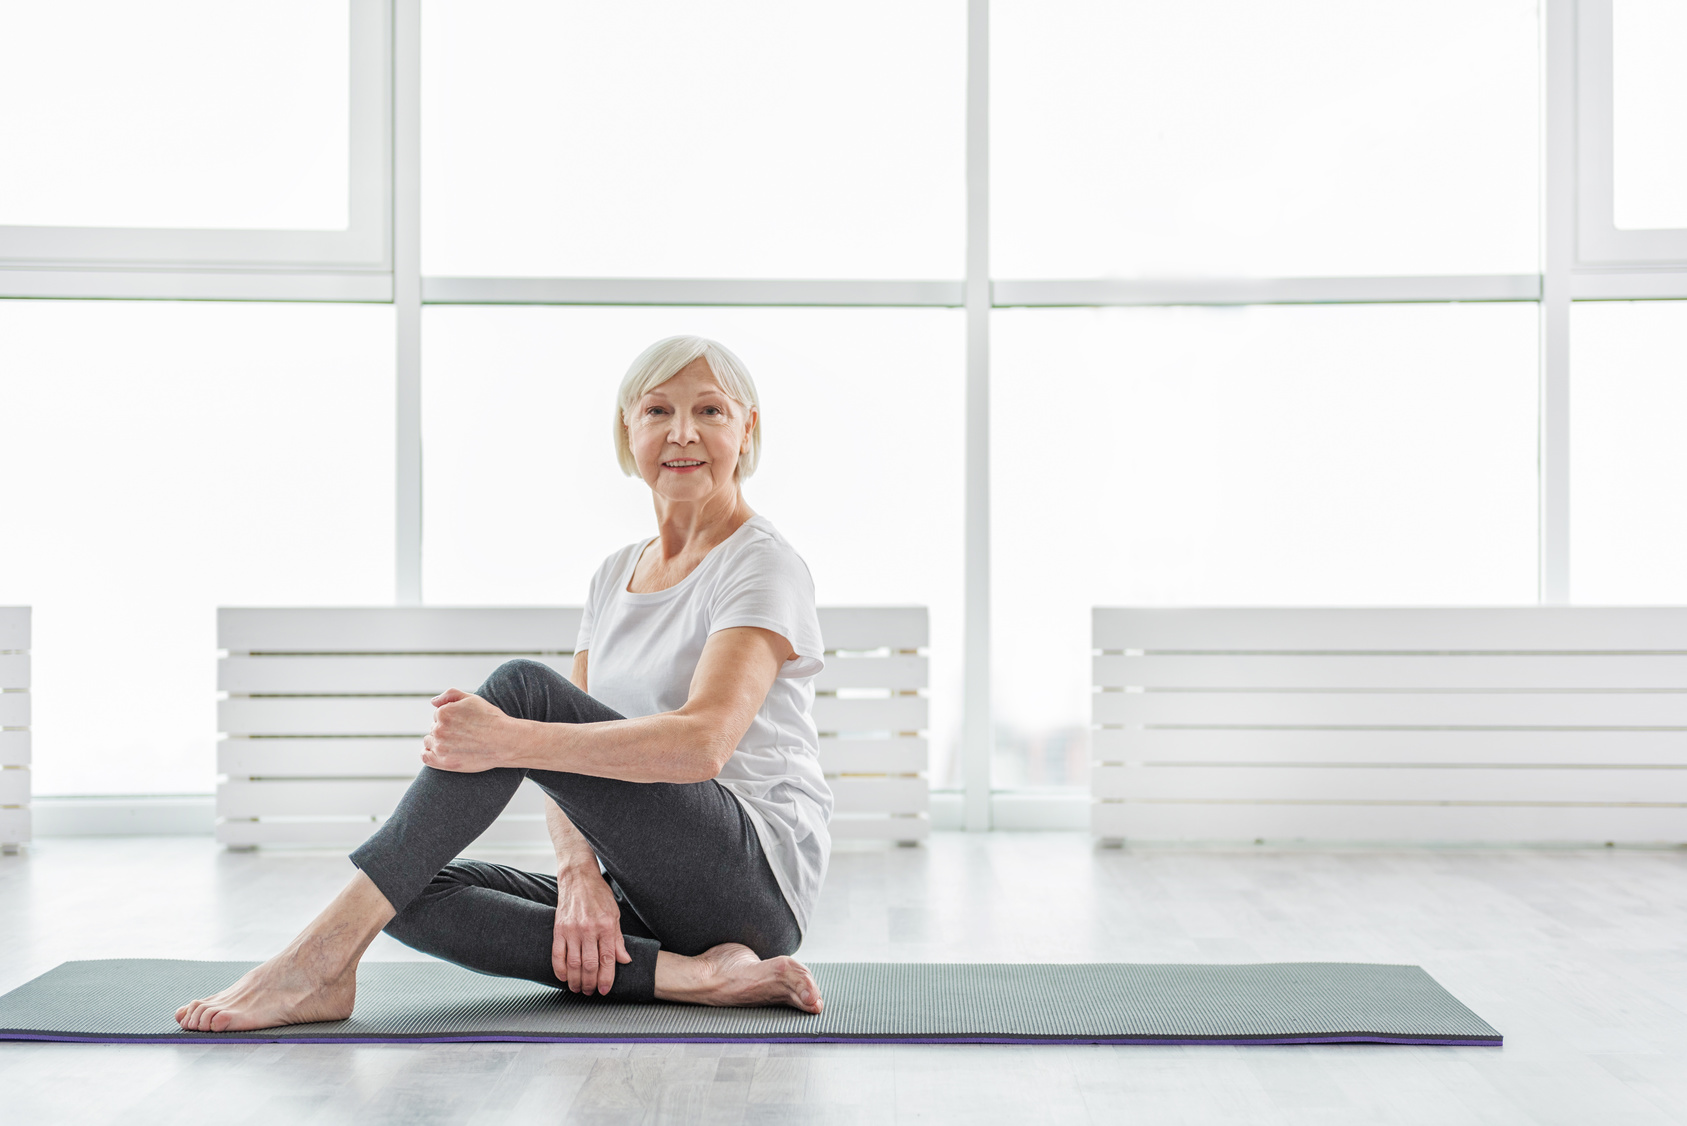 Yoga May Aid In Treatment Of Stroke Ms Parkinson S Alzheimer S And More Research Review Finds Yogauonline